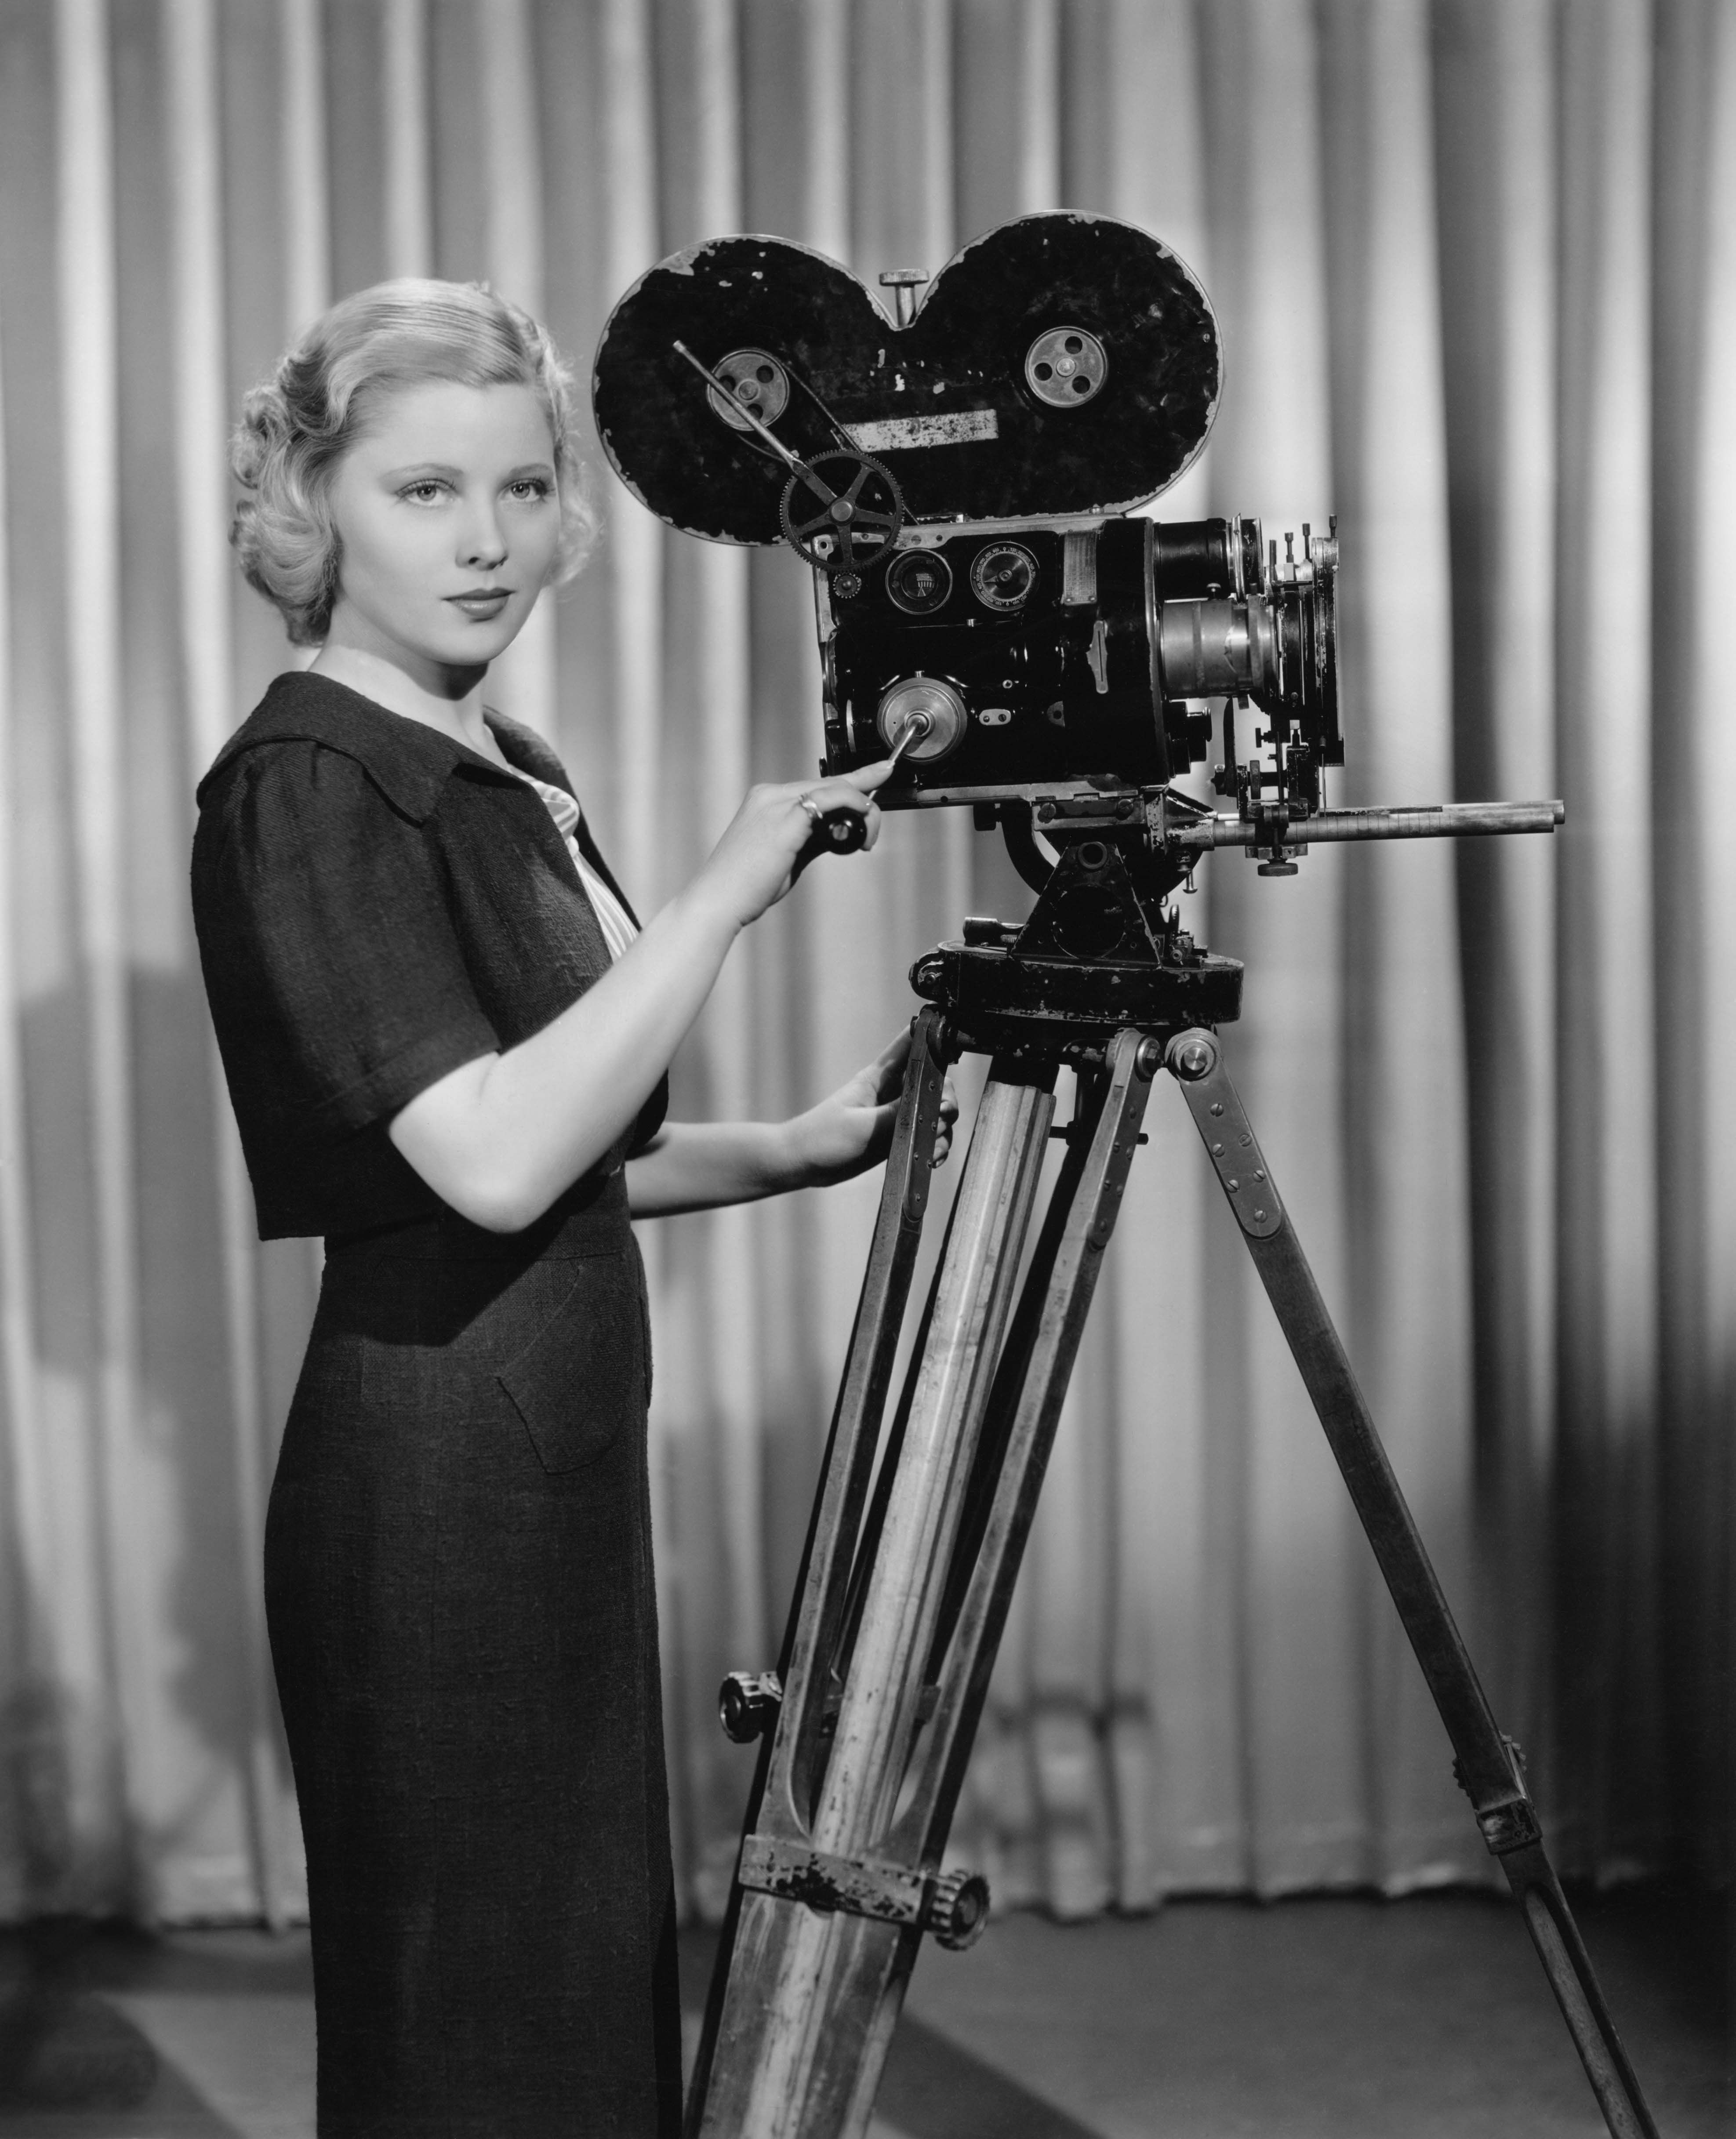 Portrait of a woman operating a movie camera